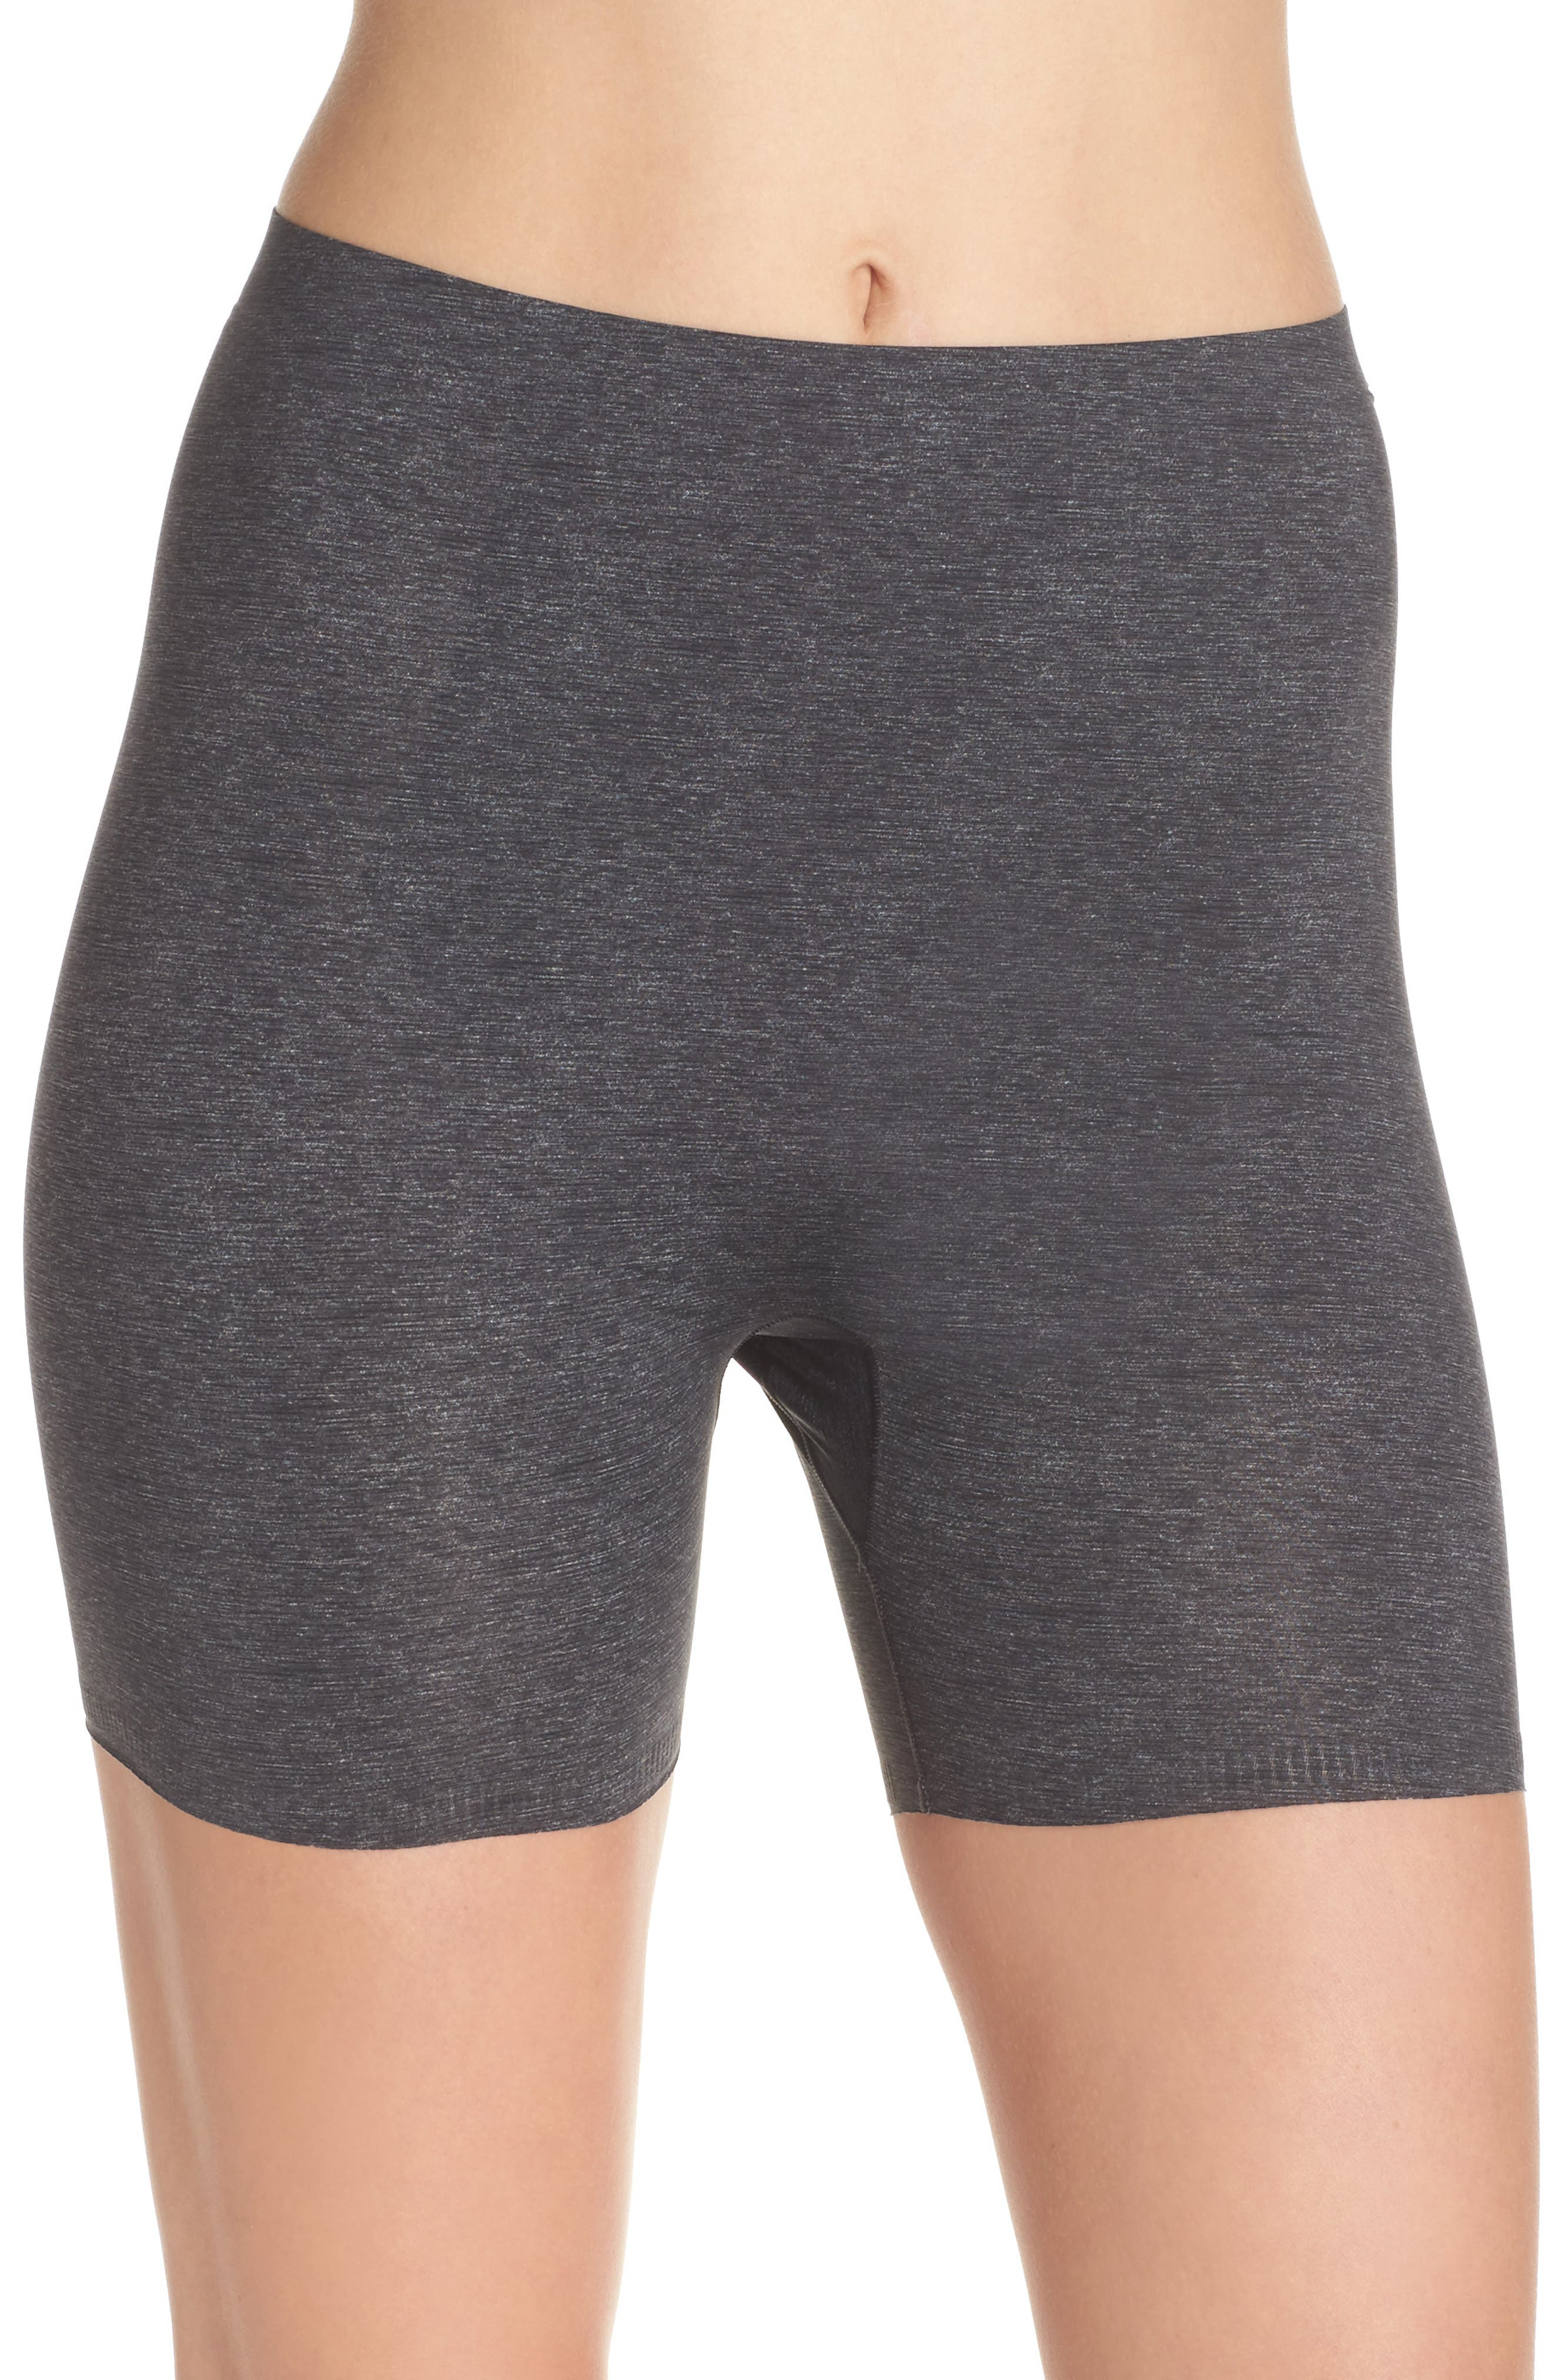 Thinstincts Girl Shorts,                         Main,                         color, Heather Charcoal